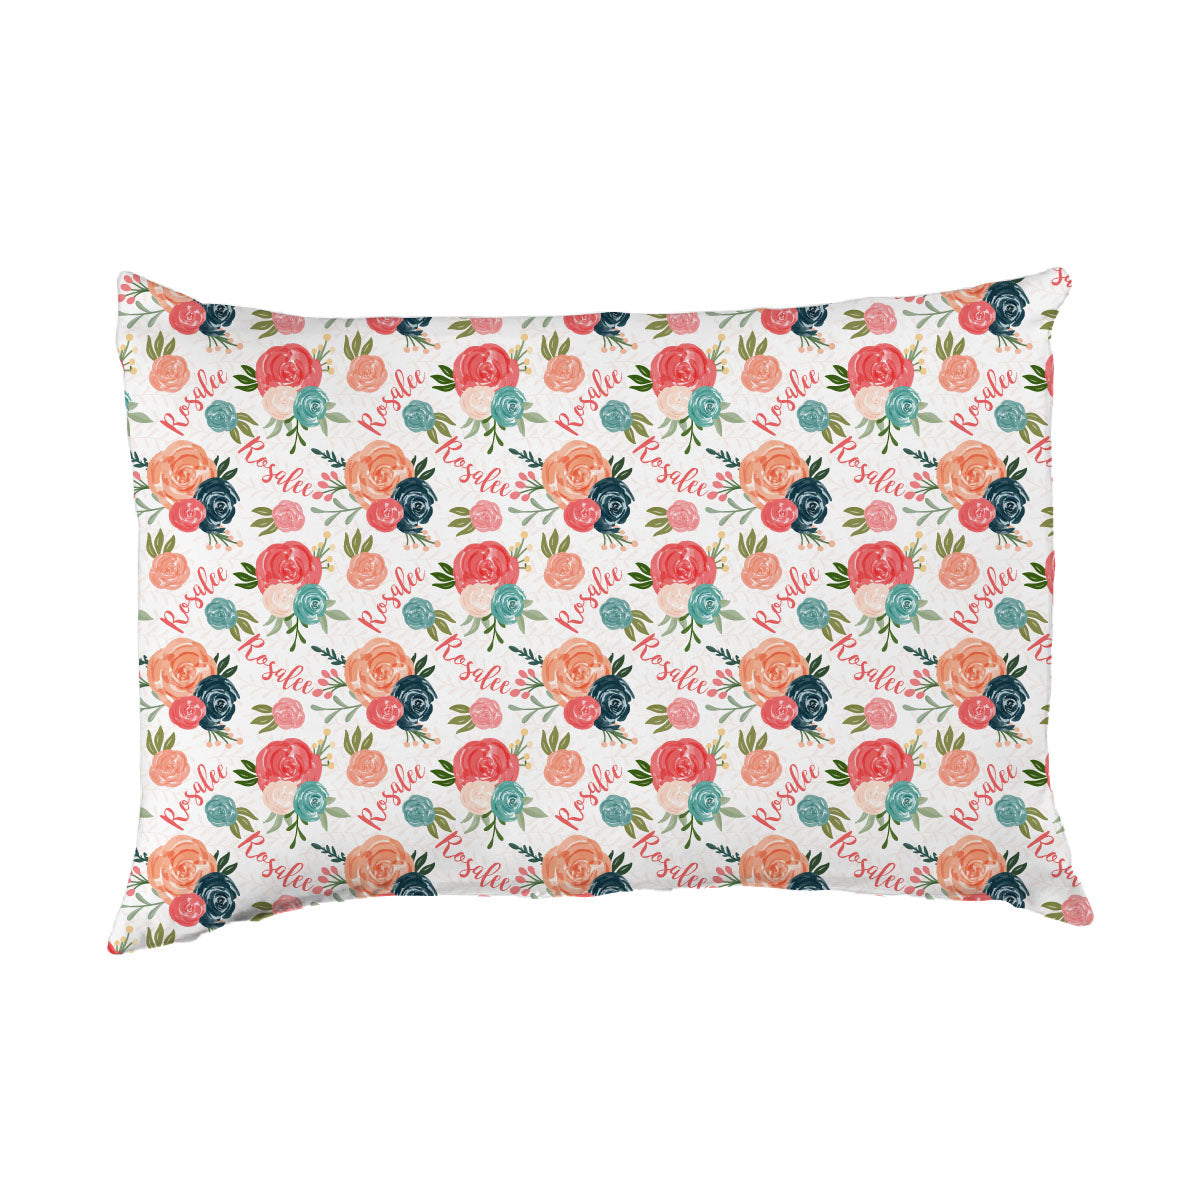 Rosalee's Blush & Blue Floral | Big Kid Pillow Case